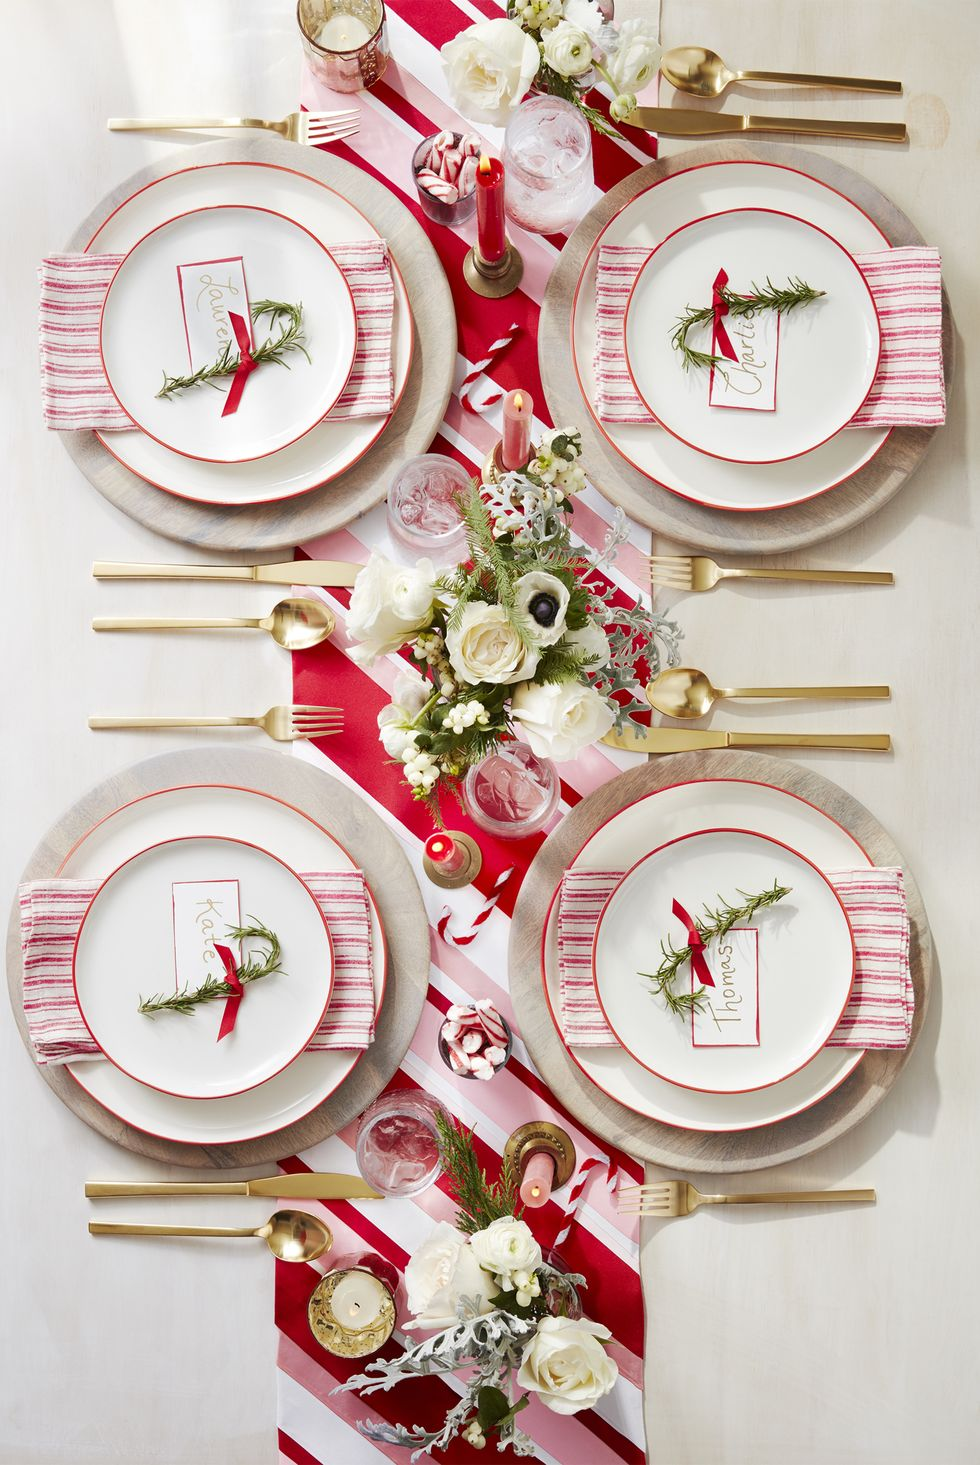 Turn Your House Into The North Pole With These Christmas Decorating Ideas Christmas Table Decorations Christmas Table Centerpieces Christmas Dining Table